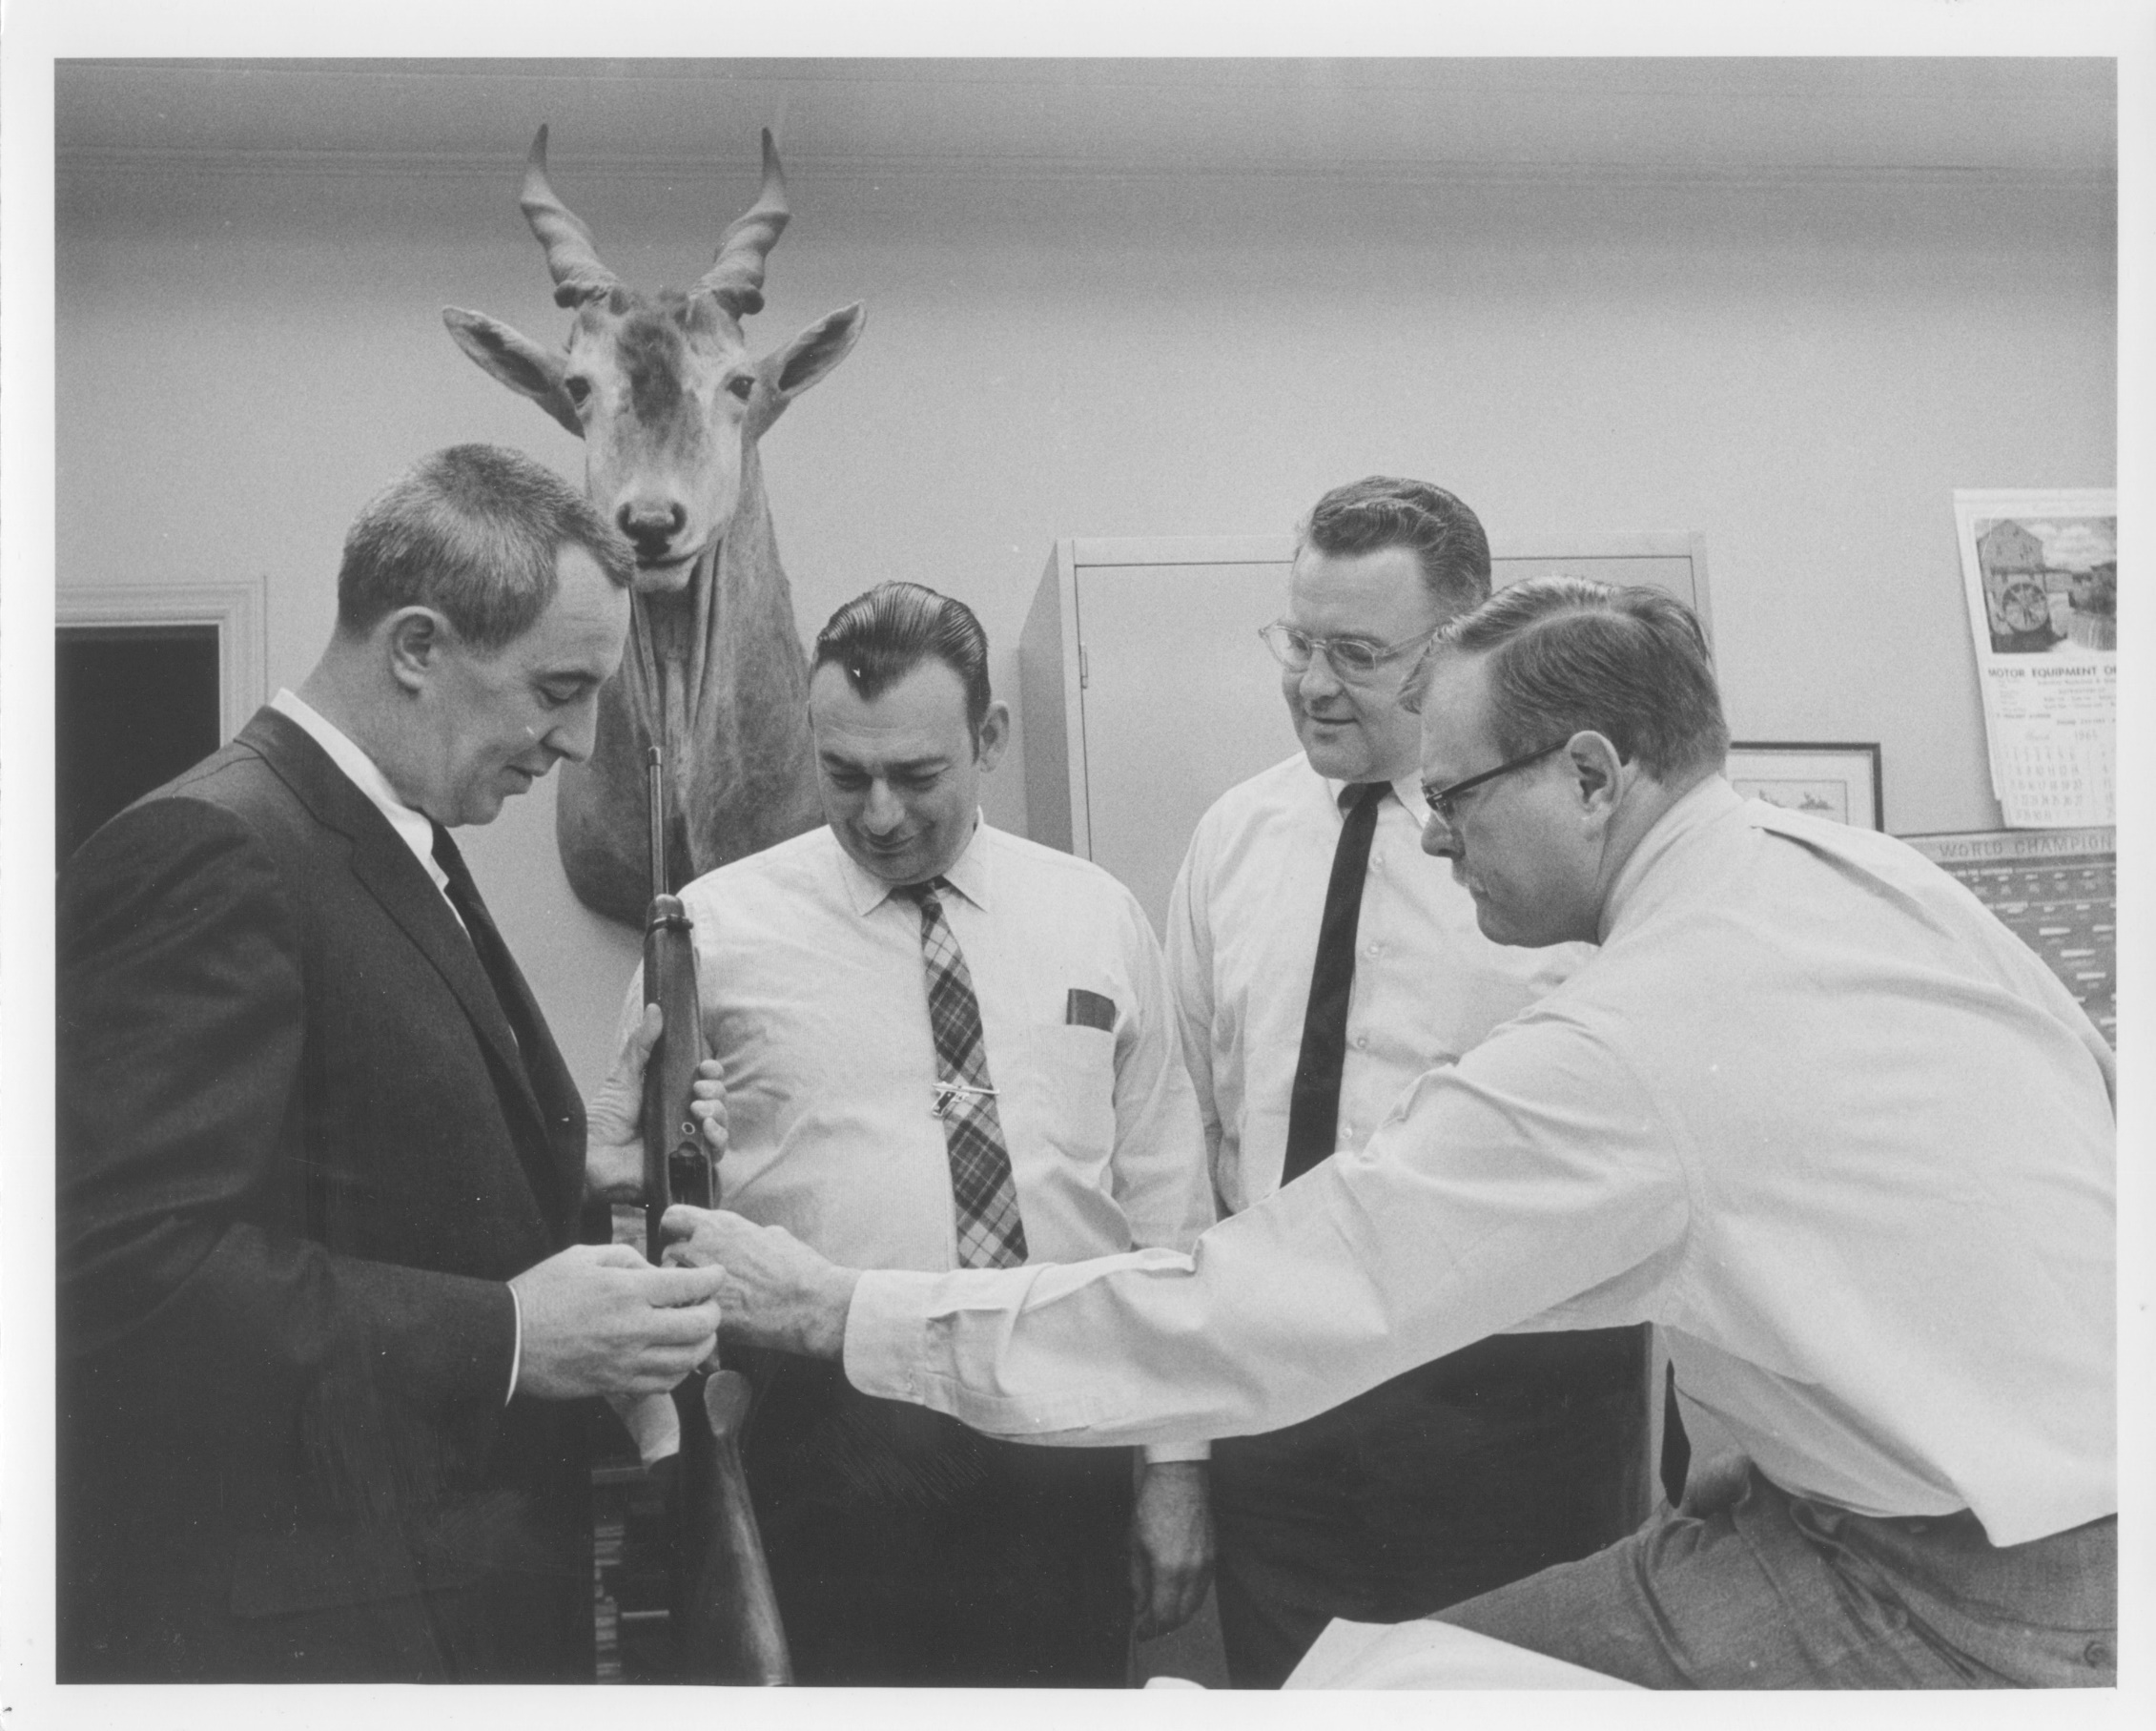 L-R, Ed Nolan VP of marketing, Harry Sefried	 chief engineer, Michael Horelick VP of manufacturing and Bill Ruger seen here discussing the rotary magazine feature of the 10/22 carbine.  This image was taken in the design studio in the Lacey Place factory 1963-64.  These men have all passed on. Notice Harry's tie clip.